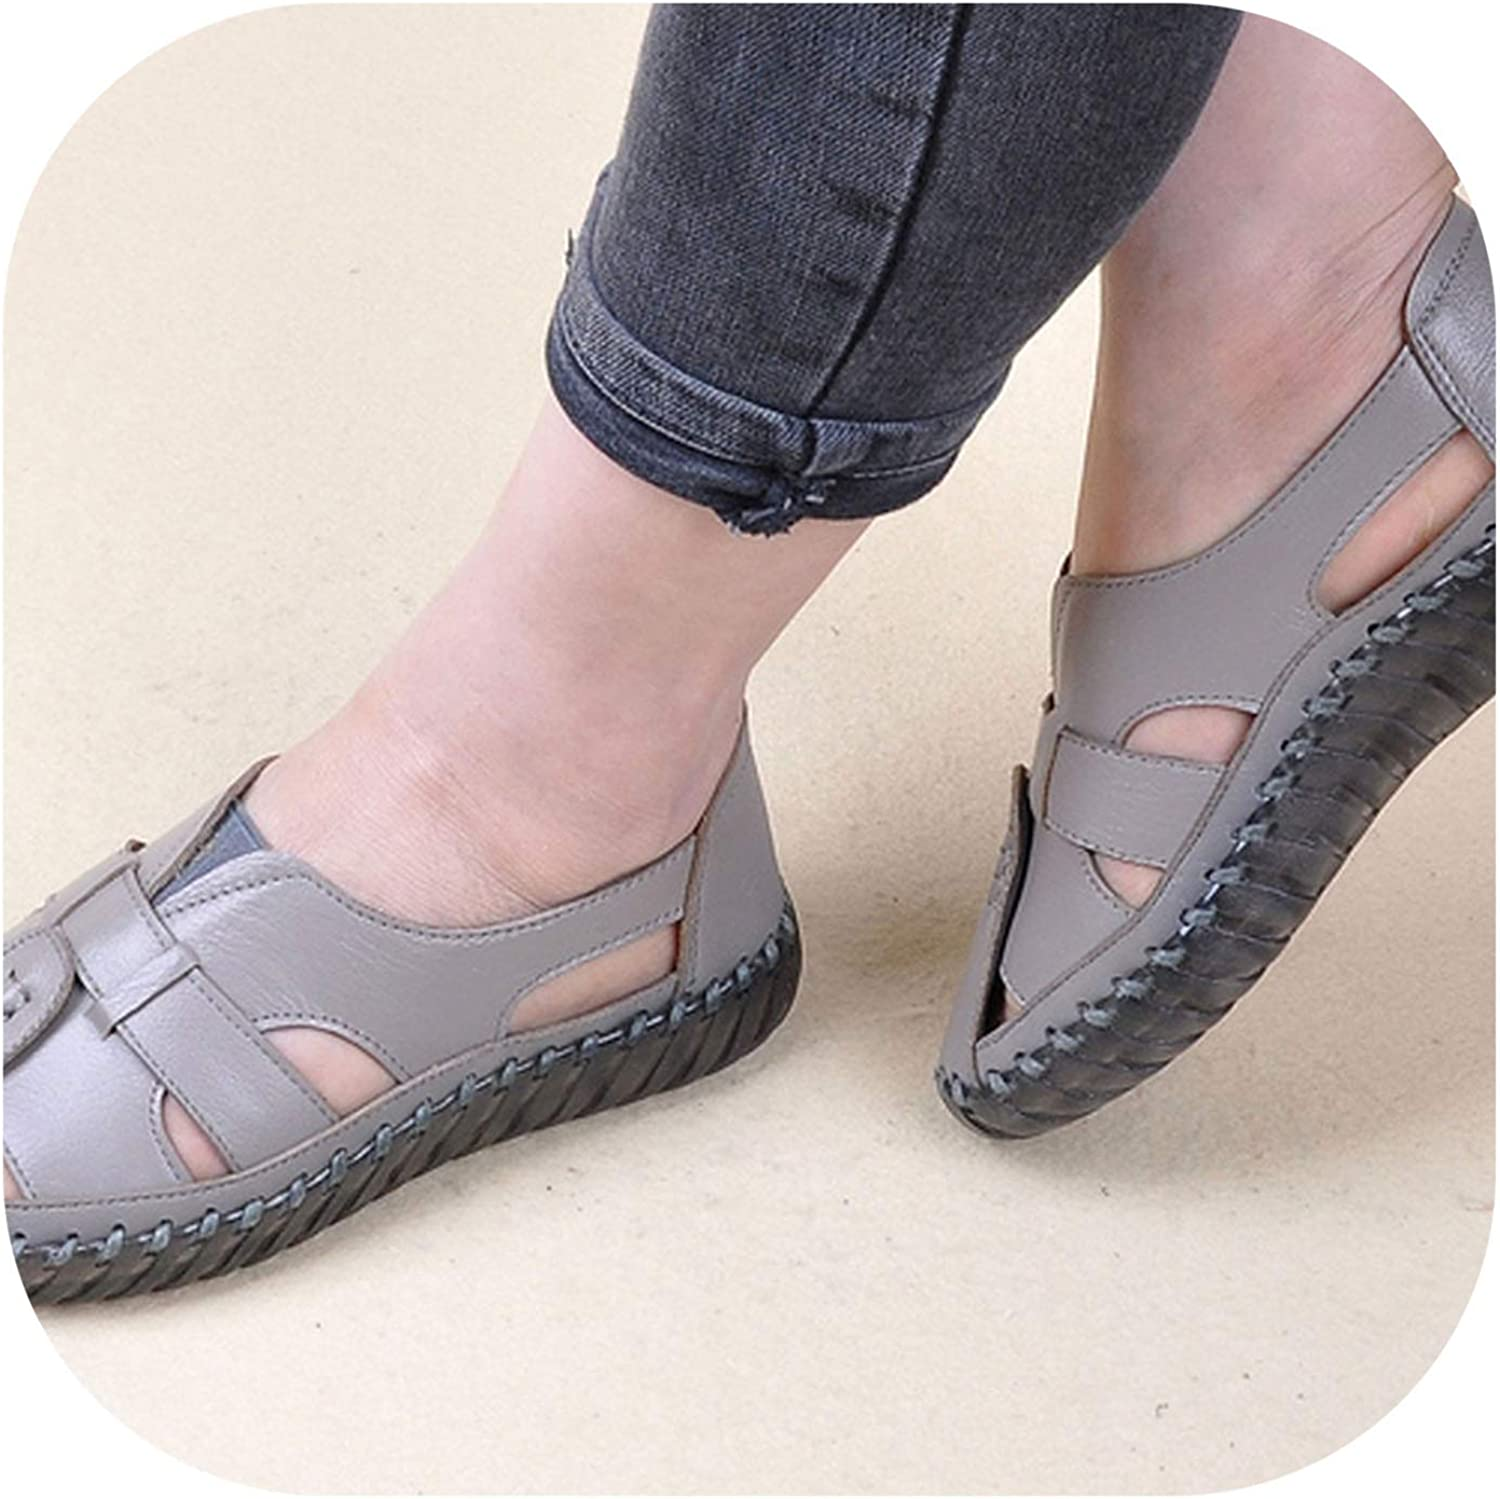 HANBINGPO Women's Sandals 2019 Summer Genuine Leather Handmade Leather Flats Retro Style Mother shoes